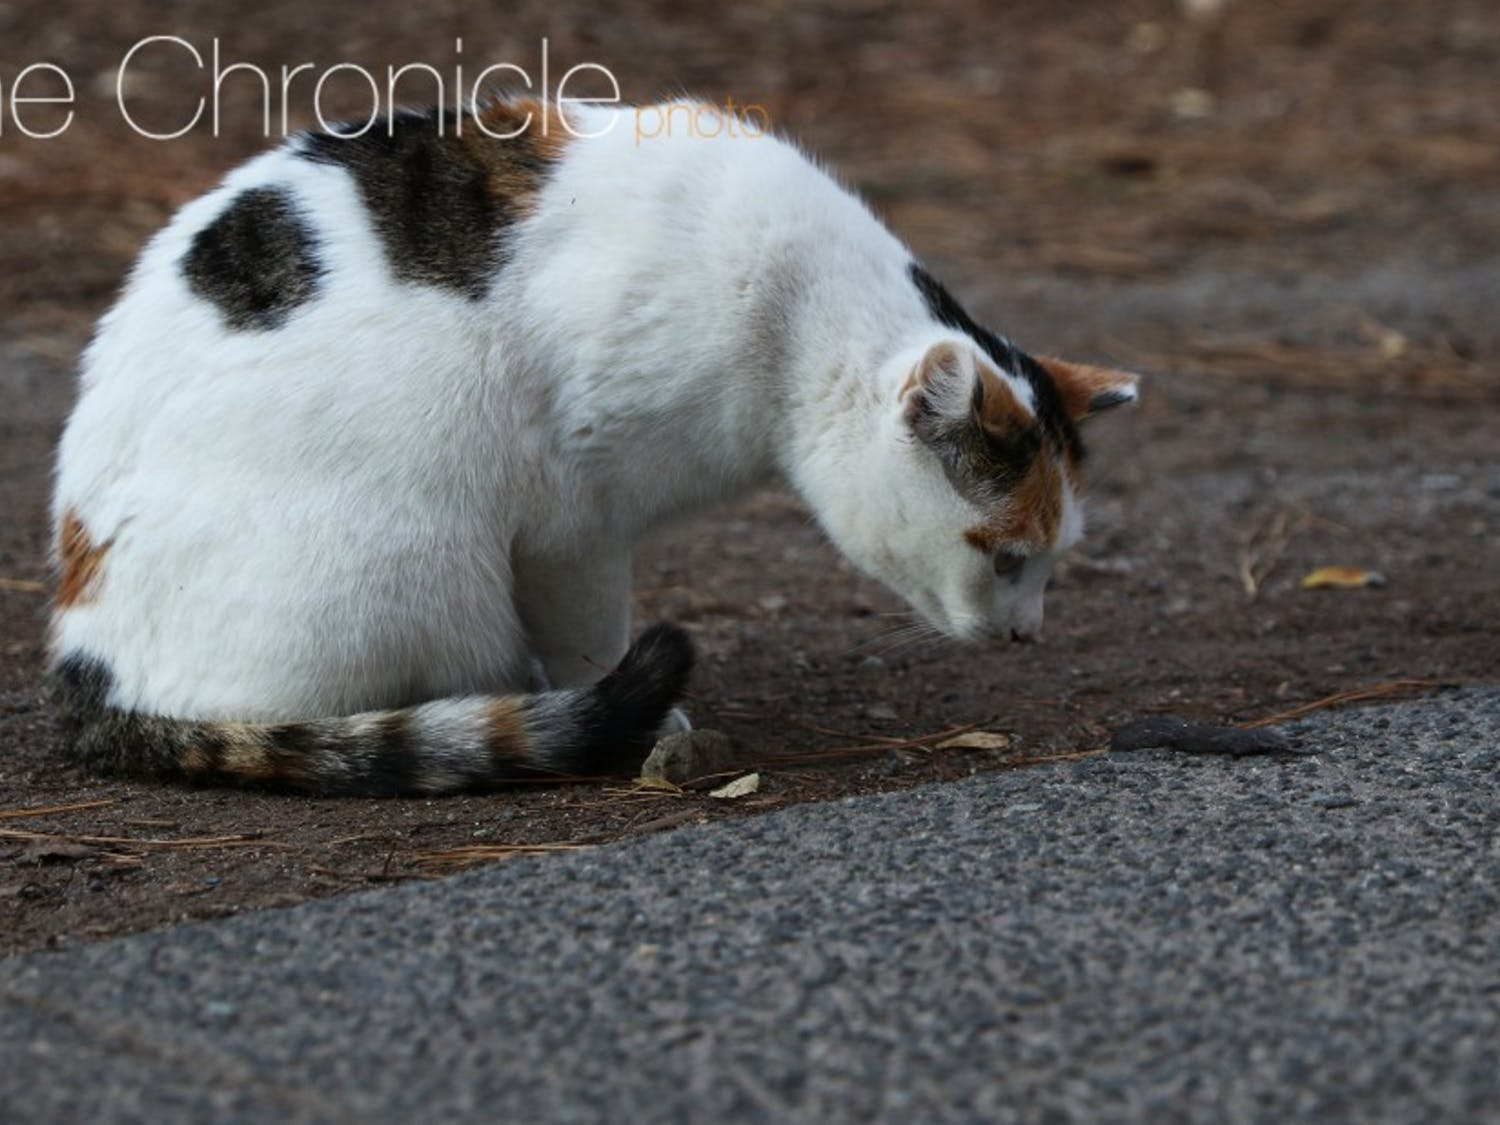 Students noted that the cats on campus are friendly and enjoy being petted.